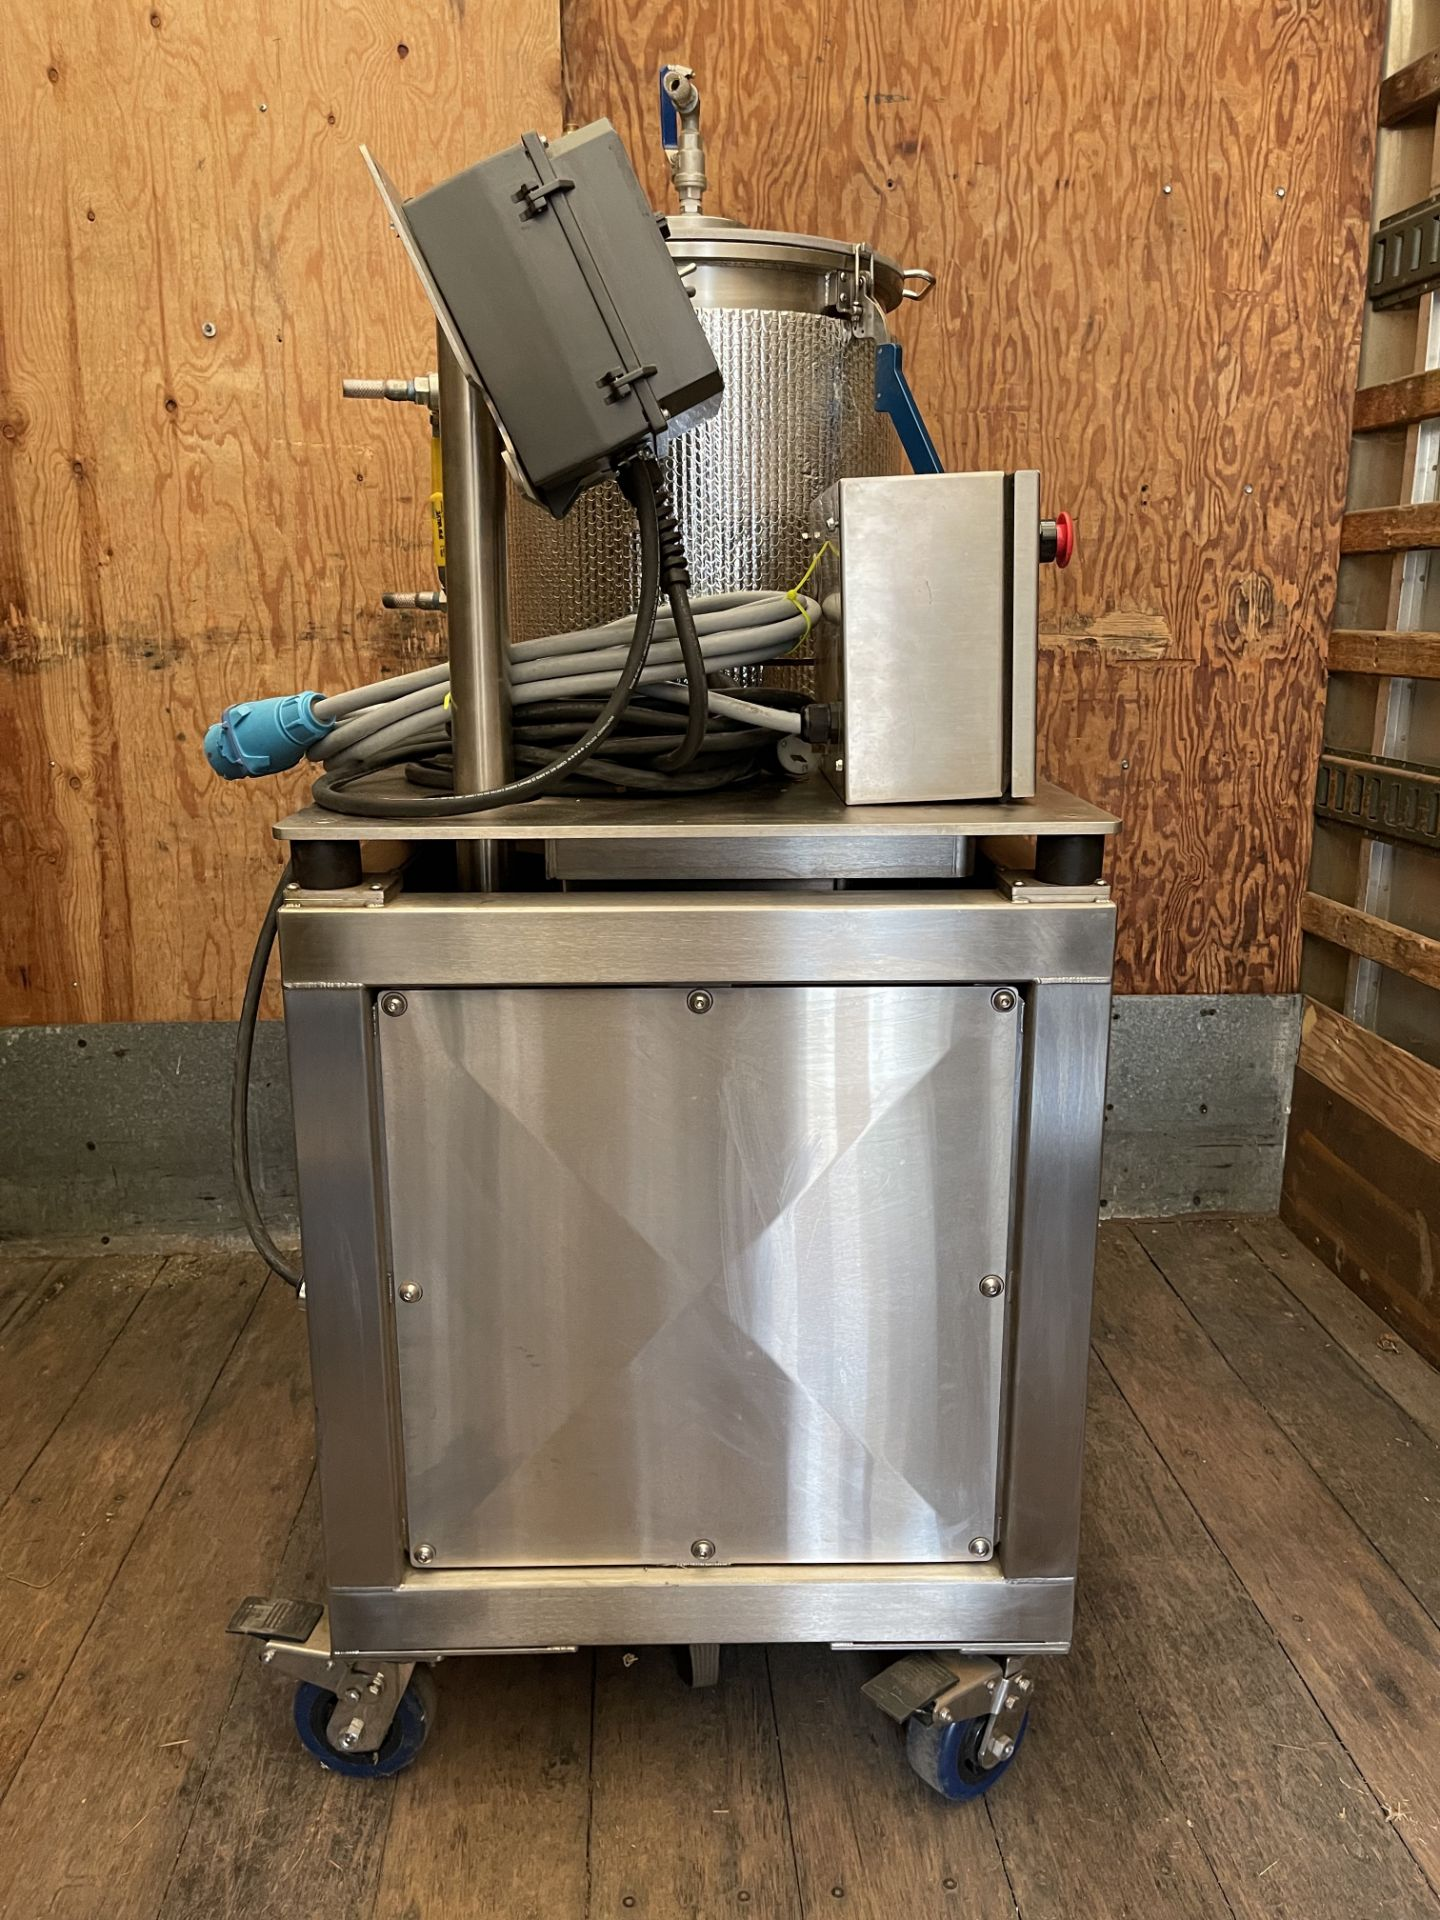 Used- Delta Separations CUP-15 Ethanol Extraction System. Capacity: 8-14 lbs/batch w/ (3) Kegs - Image 11 of 22